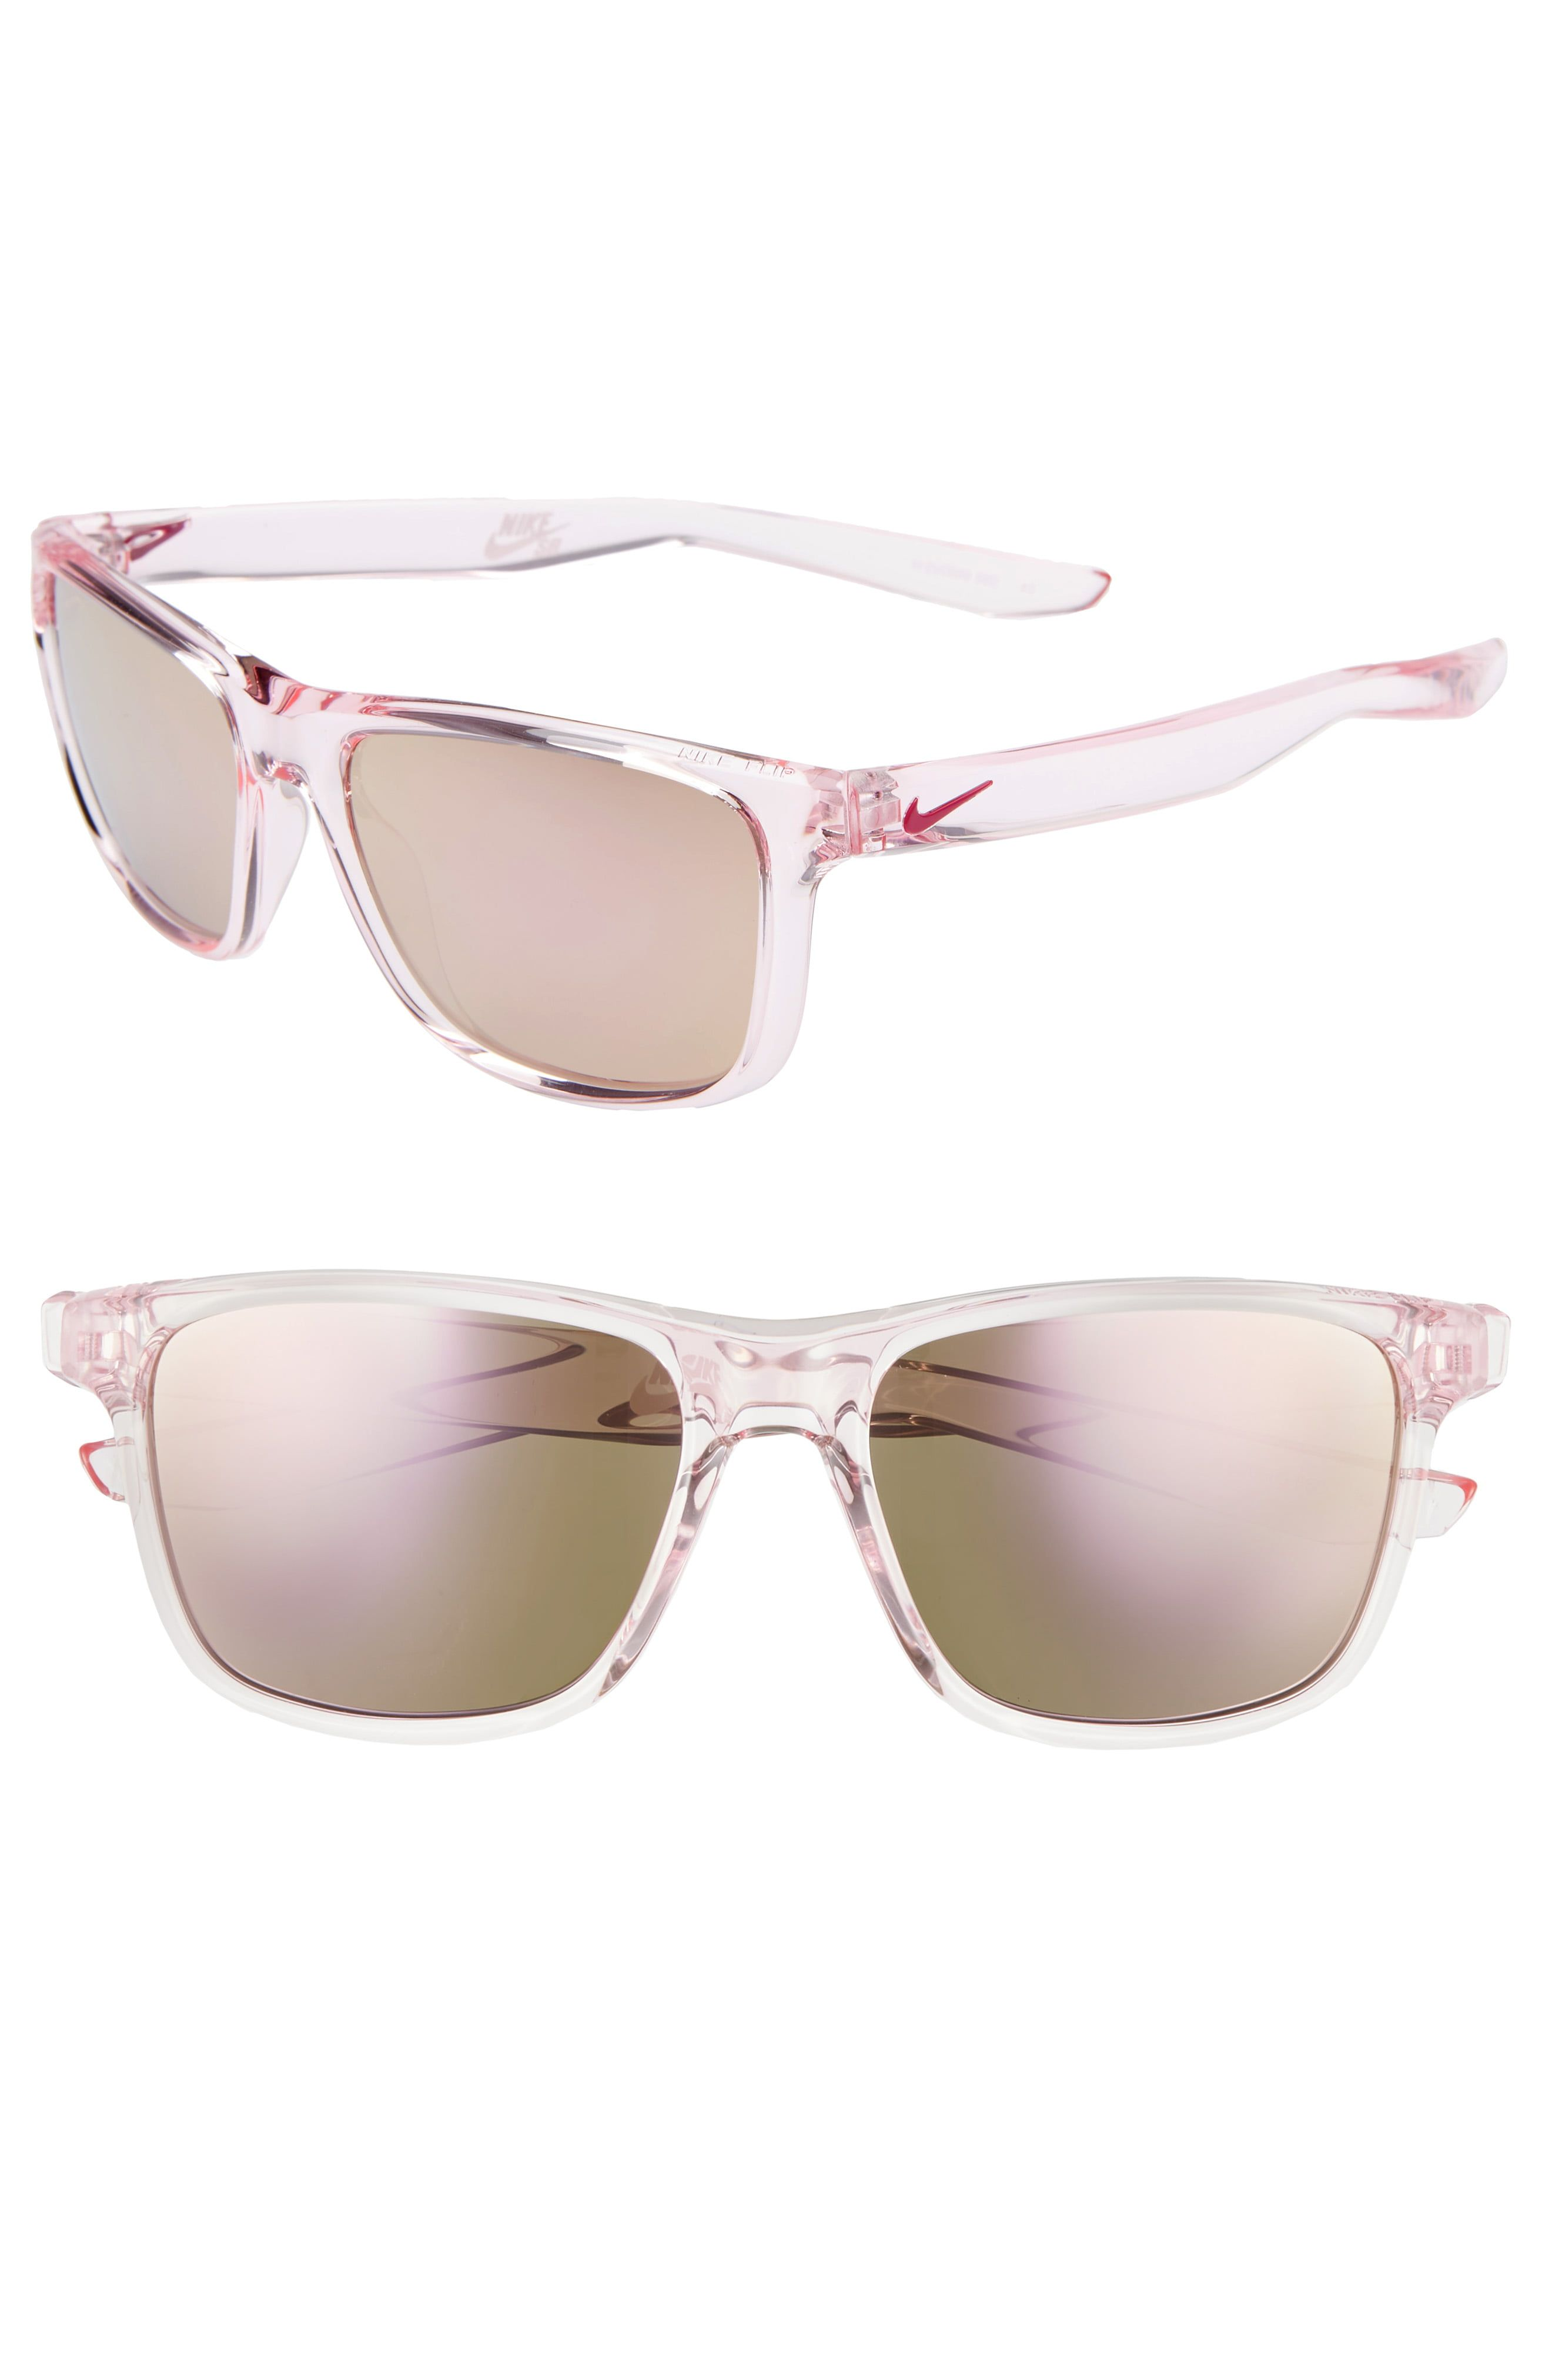 Nike Flip 53Mm Mirrored Sunglasses Crystal Clear/ Pink